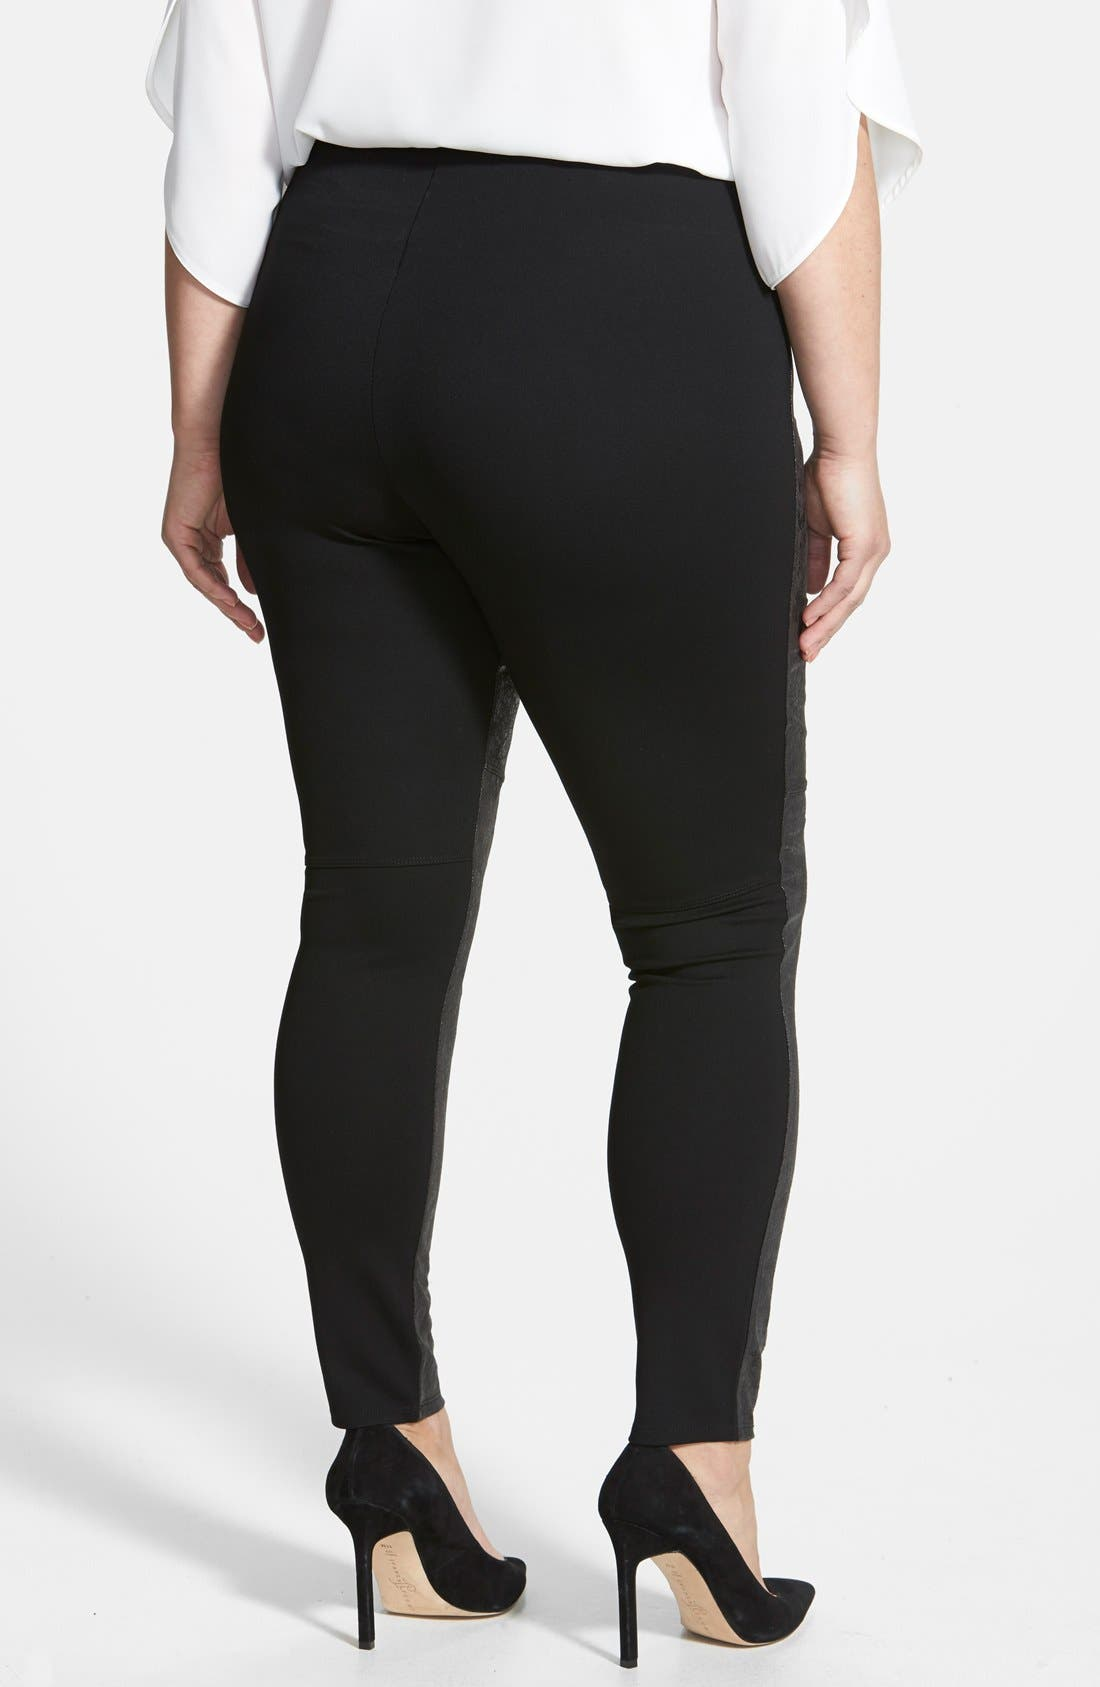 Alternate Image 2  - Lyssé Distressed Faux Leather & Ponte Knit Leggings (Plus Size)